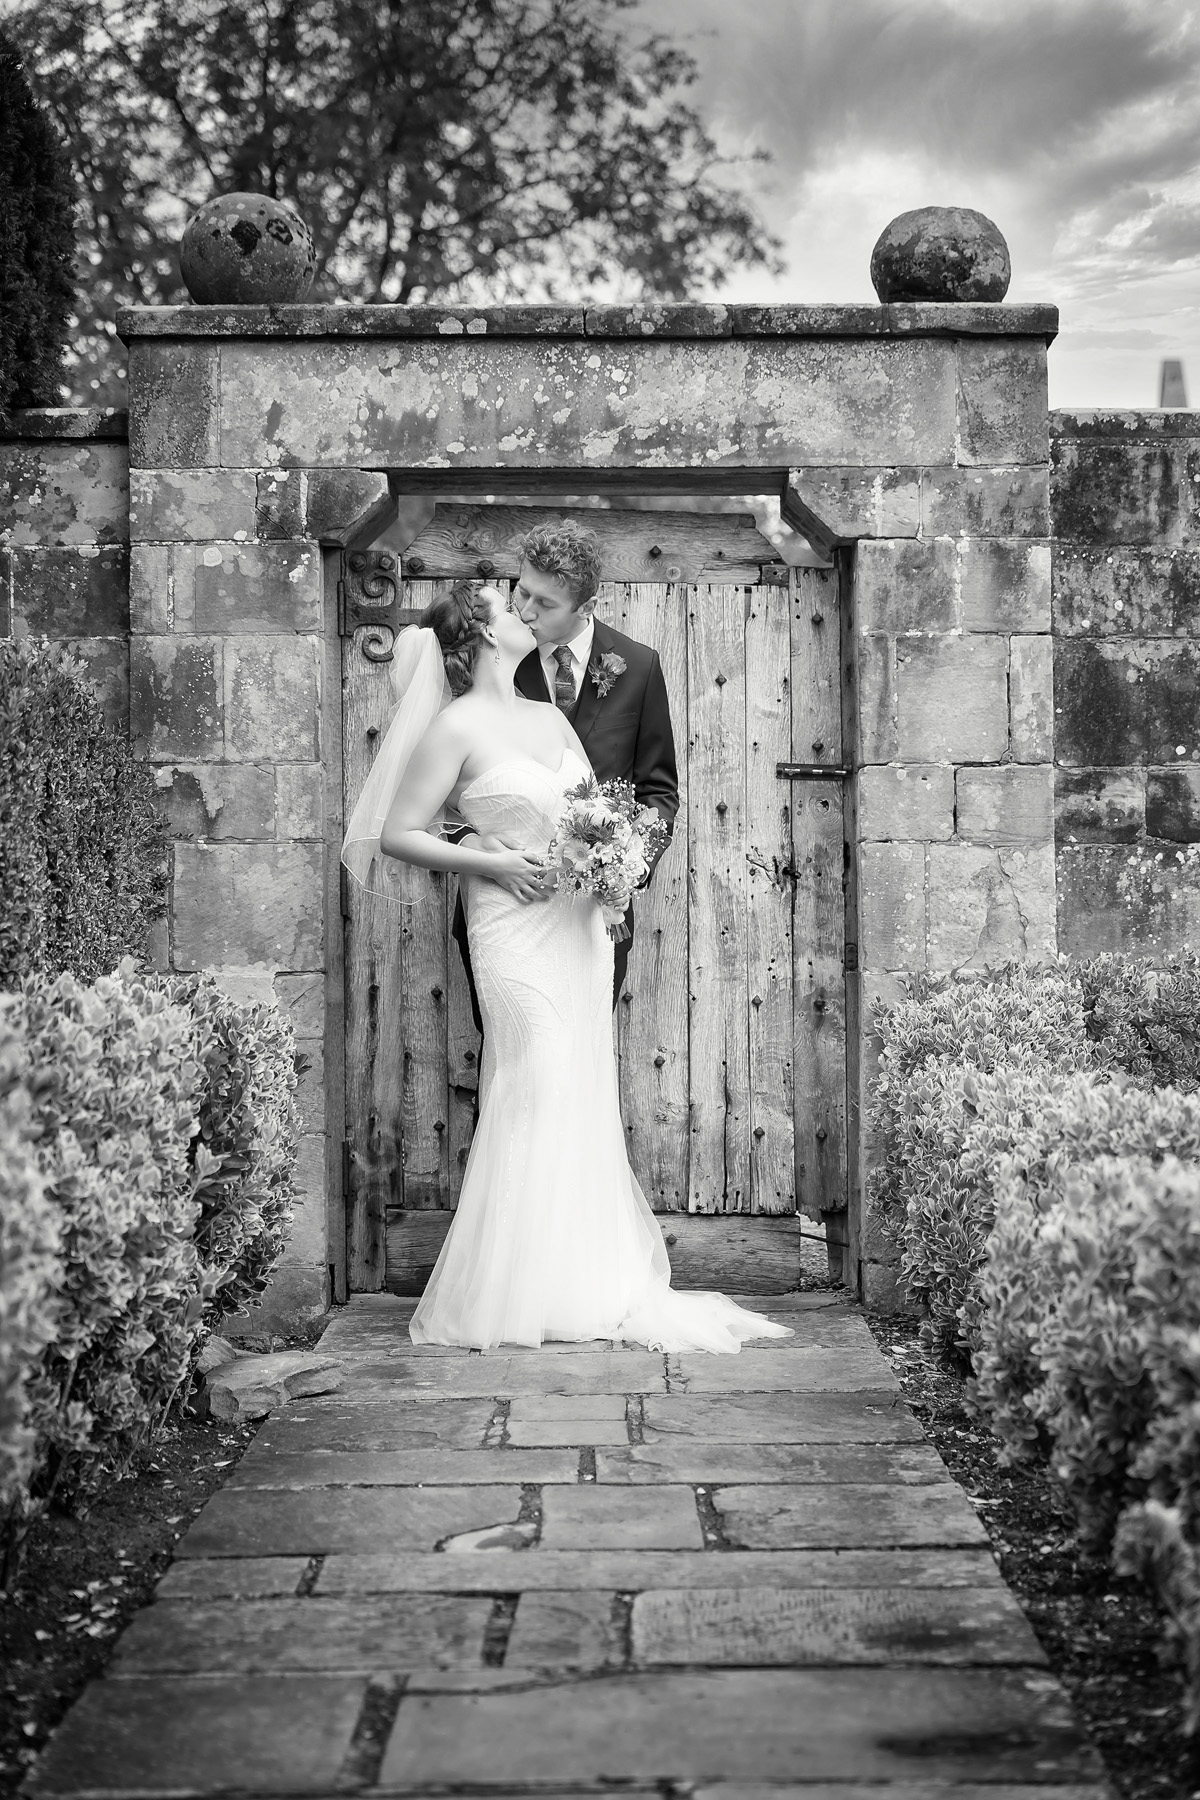 Bride and Groom romantic black and white wedding portrait in front of coombe abbey's old rustic wood door & stone arch